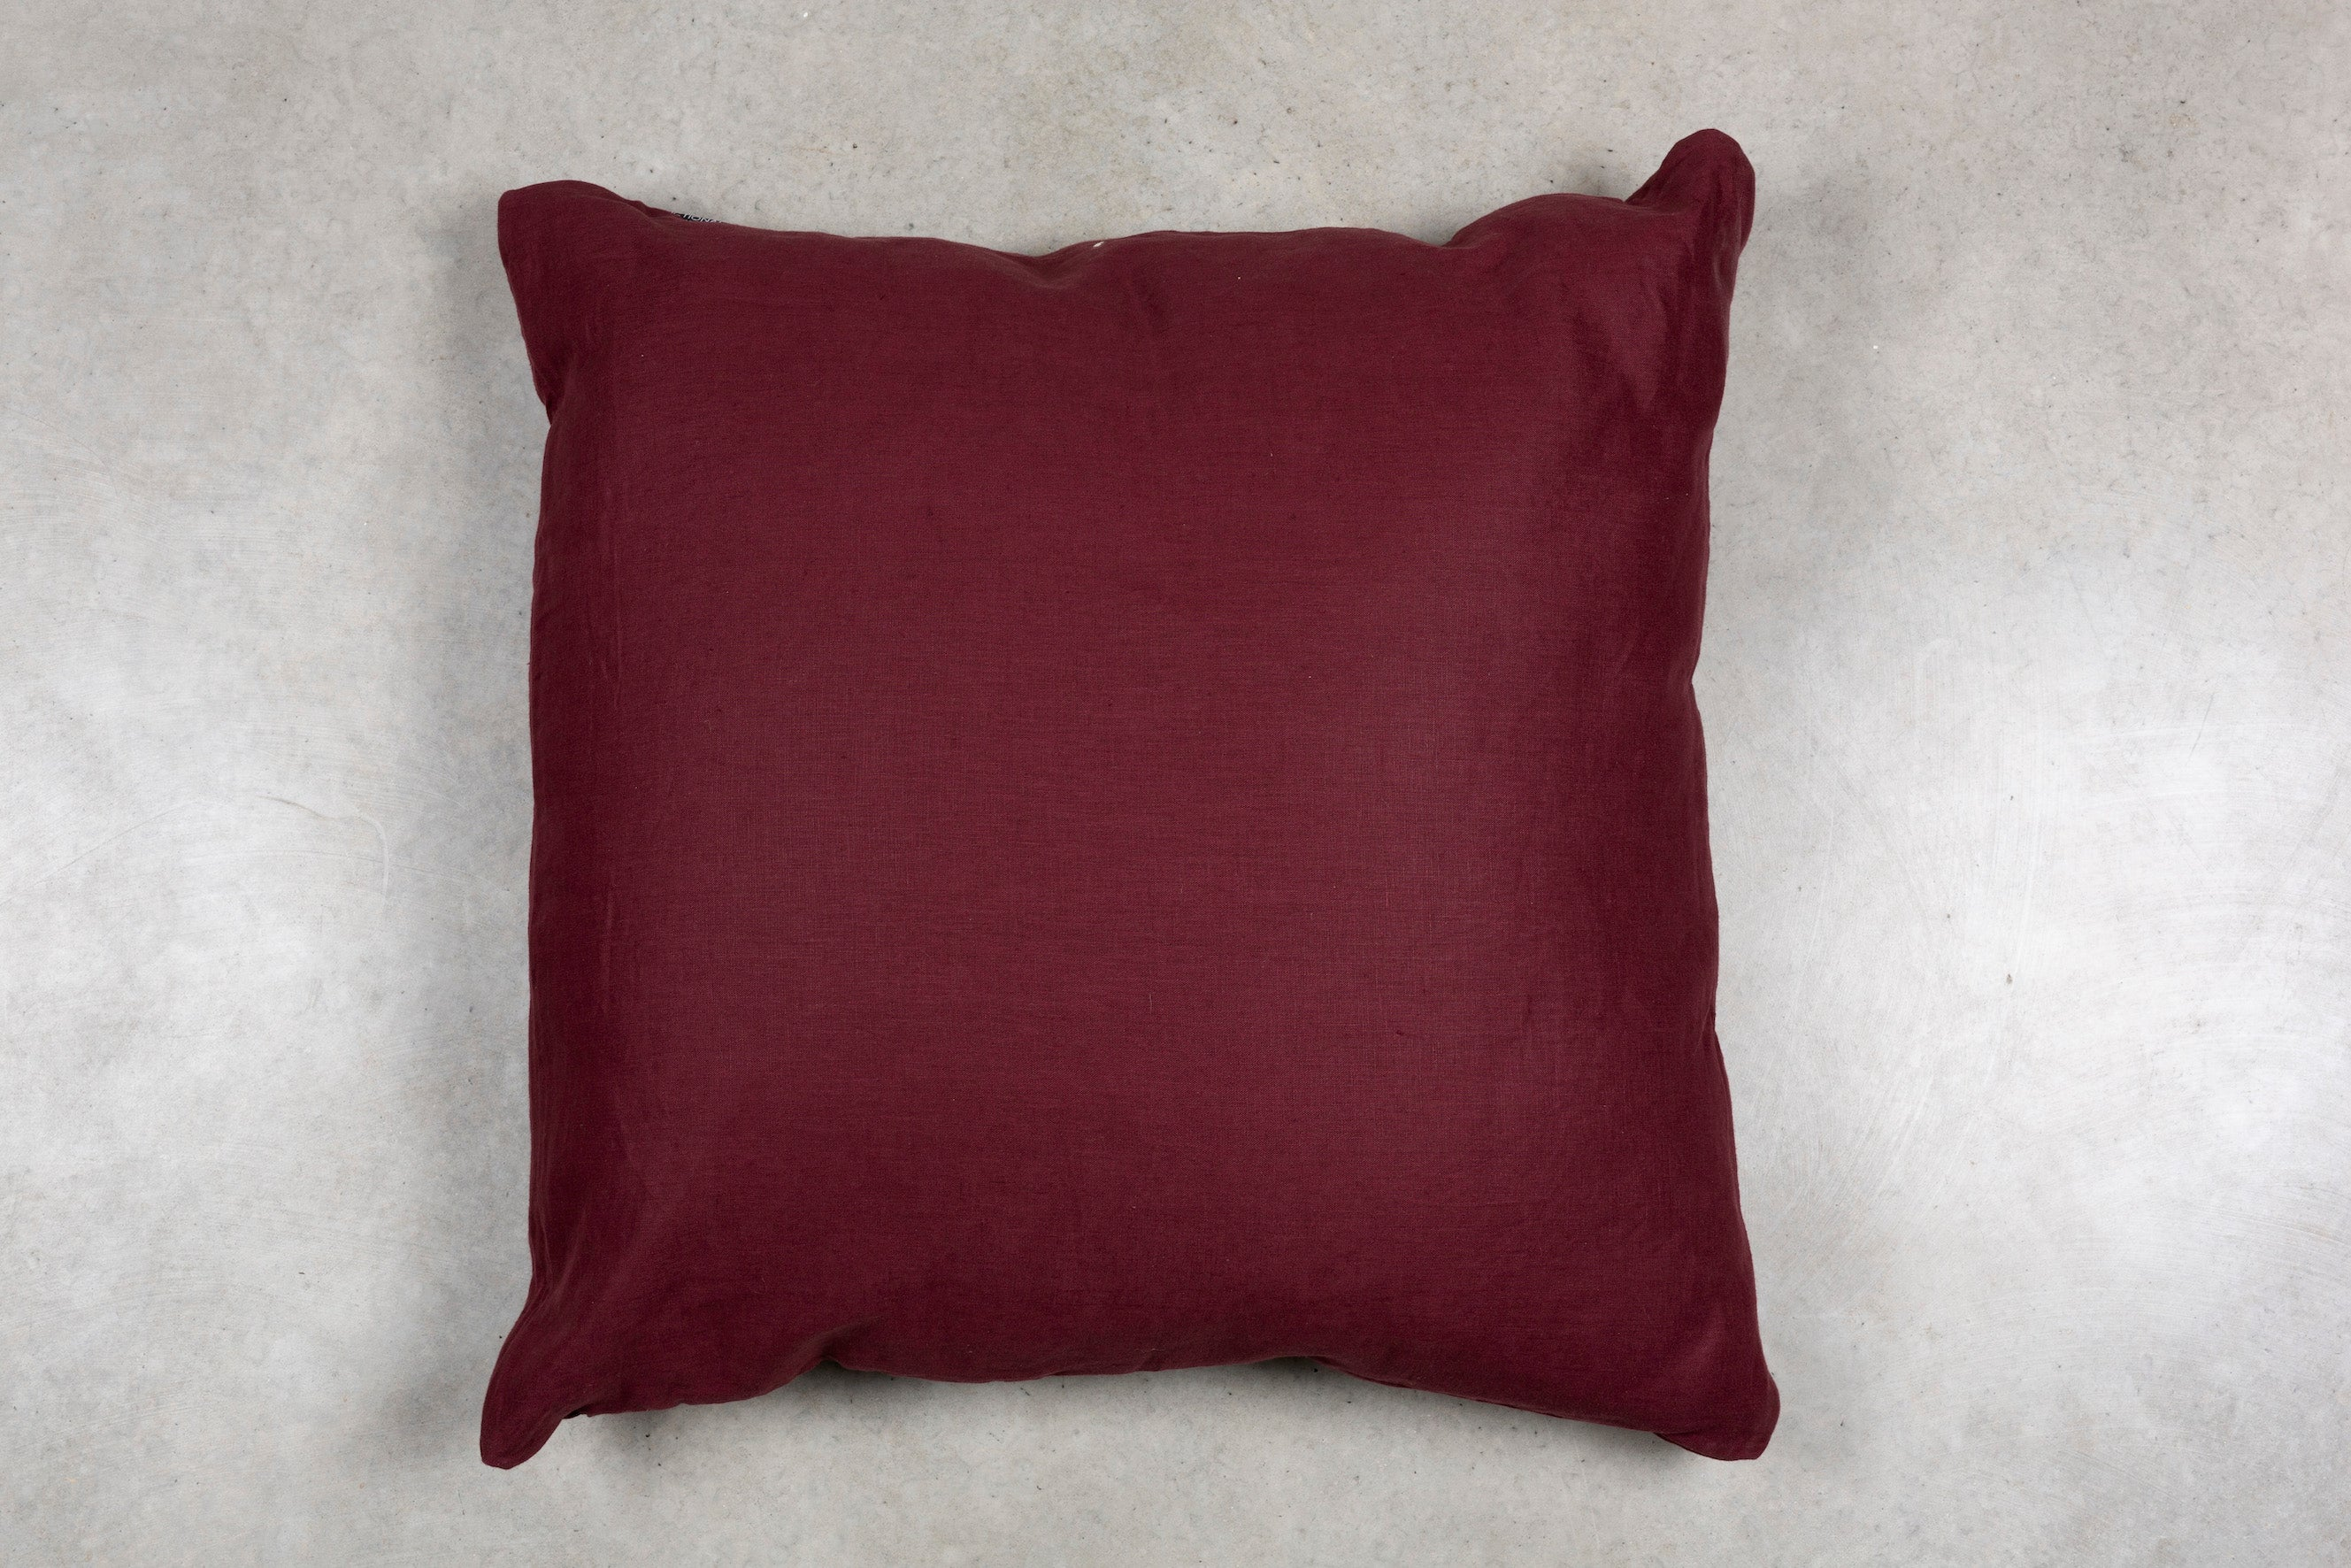 Plum Linen European Pillowcase